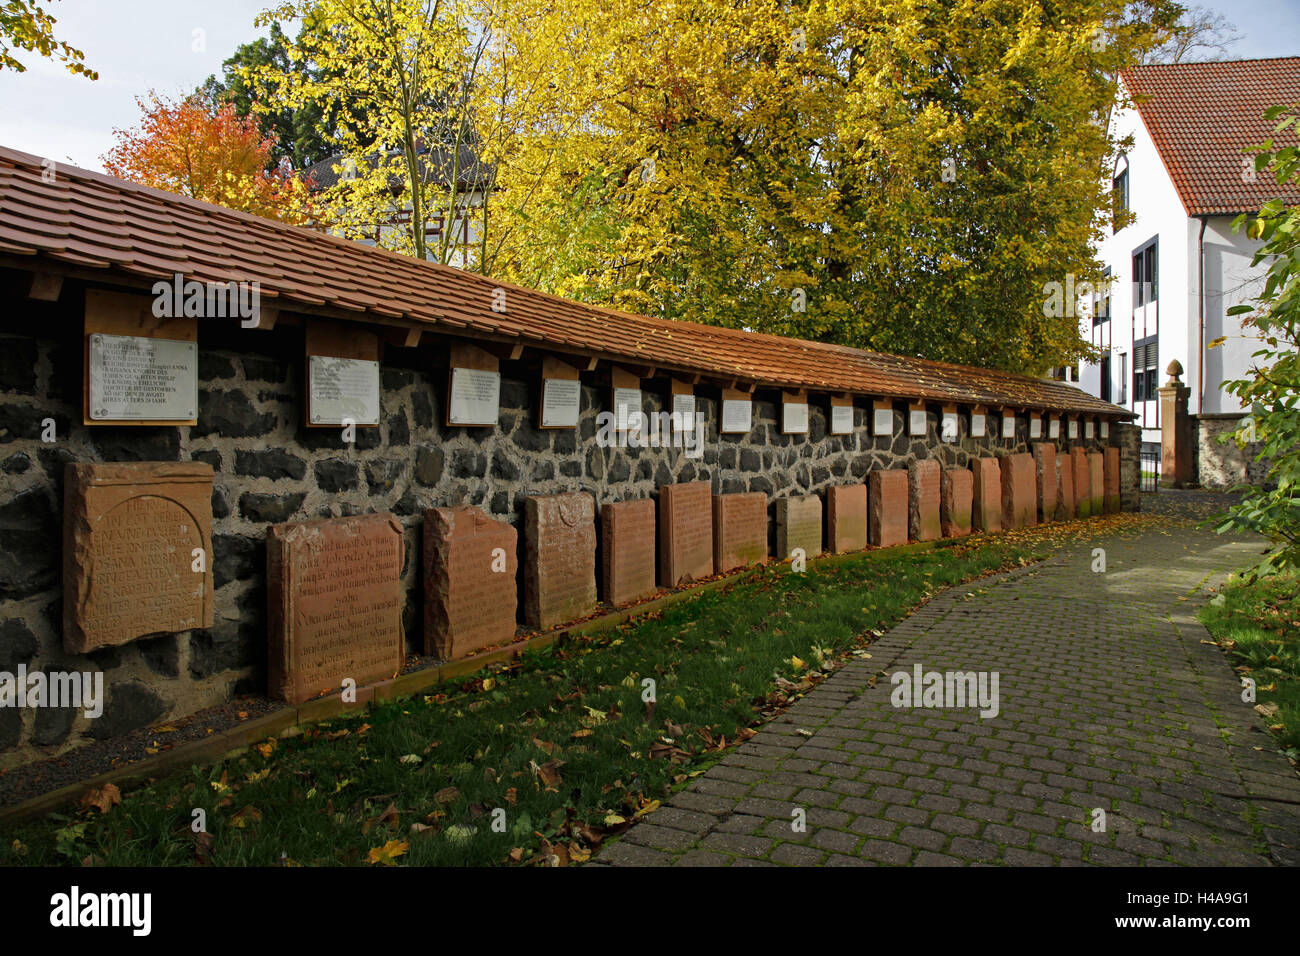 Germany, Hessen, Nidda, district Wetteraukreis, gravestones from 17. and 18. Cent., Stock Photo